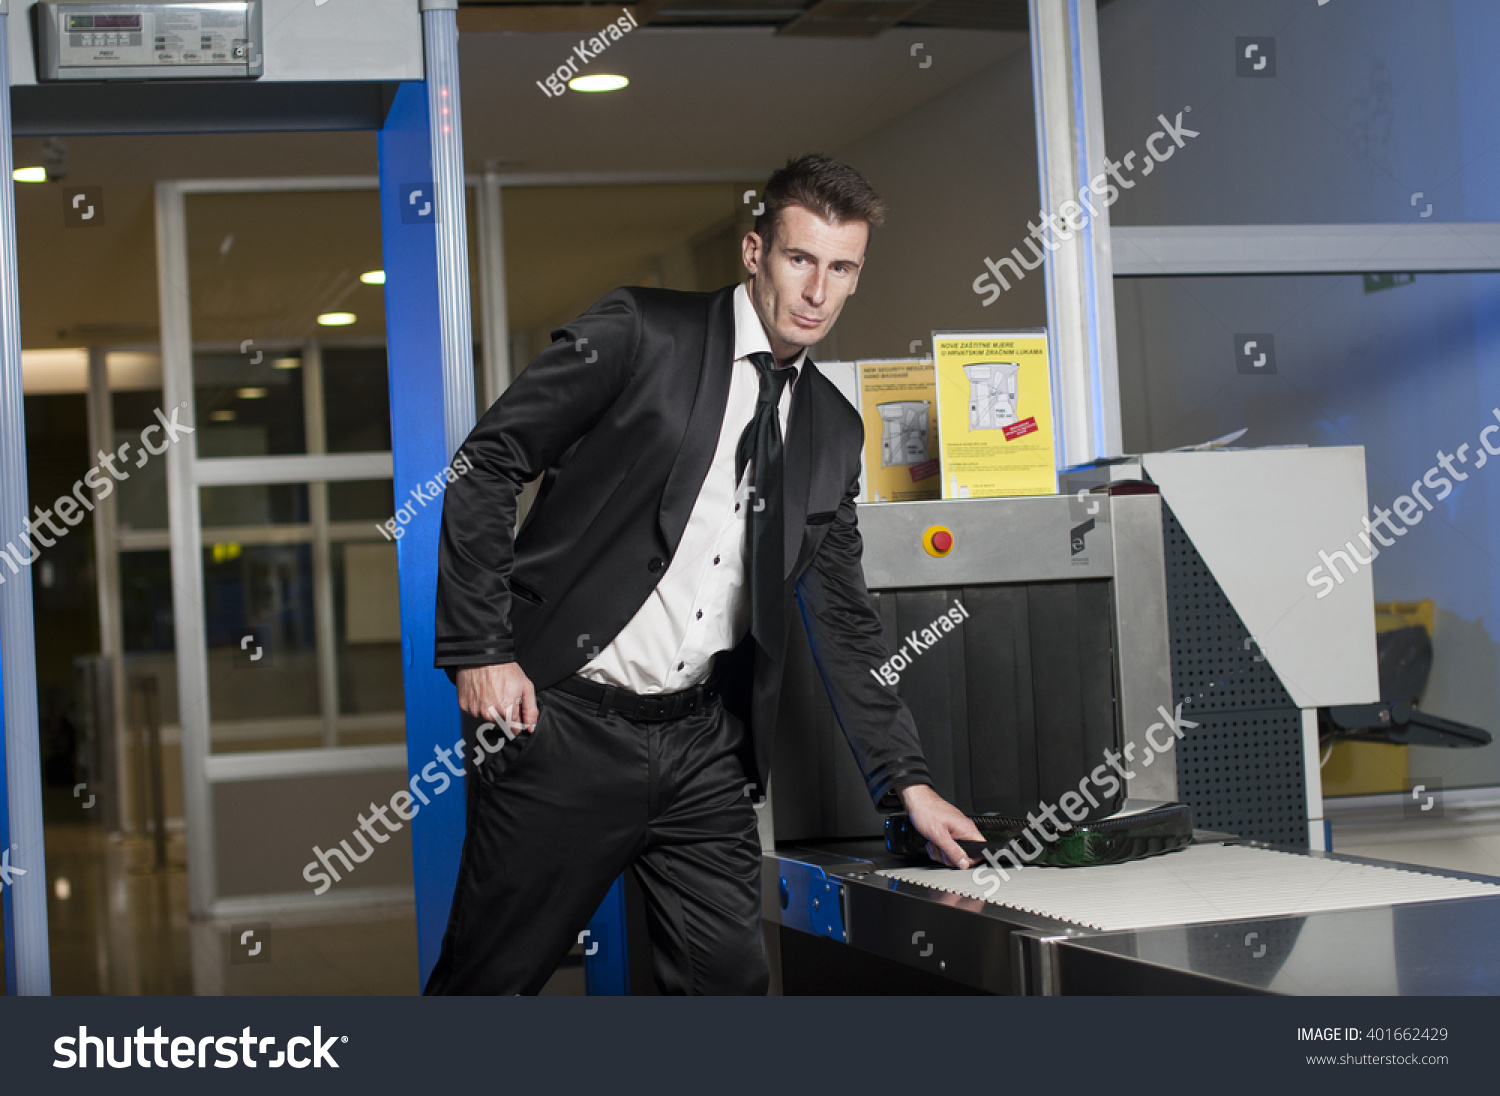 Jew Detector: Person Airport Security Gates Metal Detectors Stock Photo